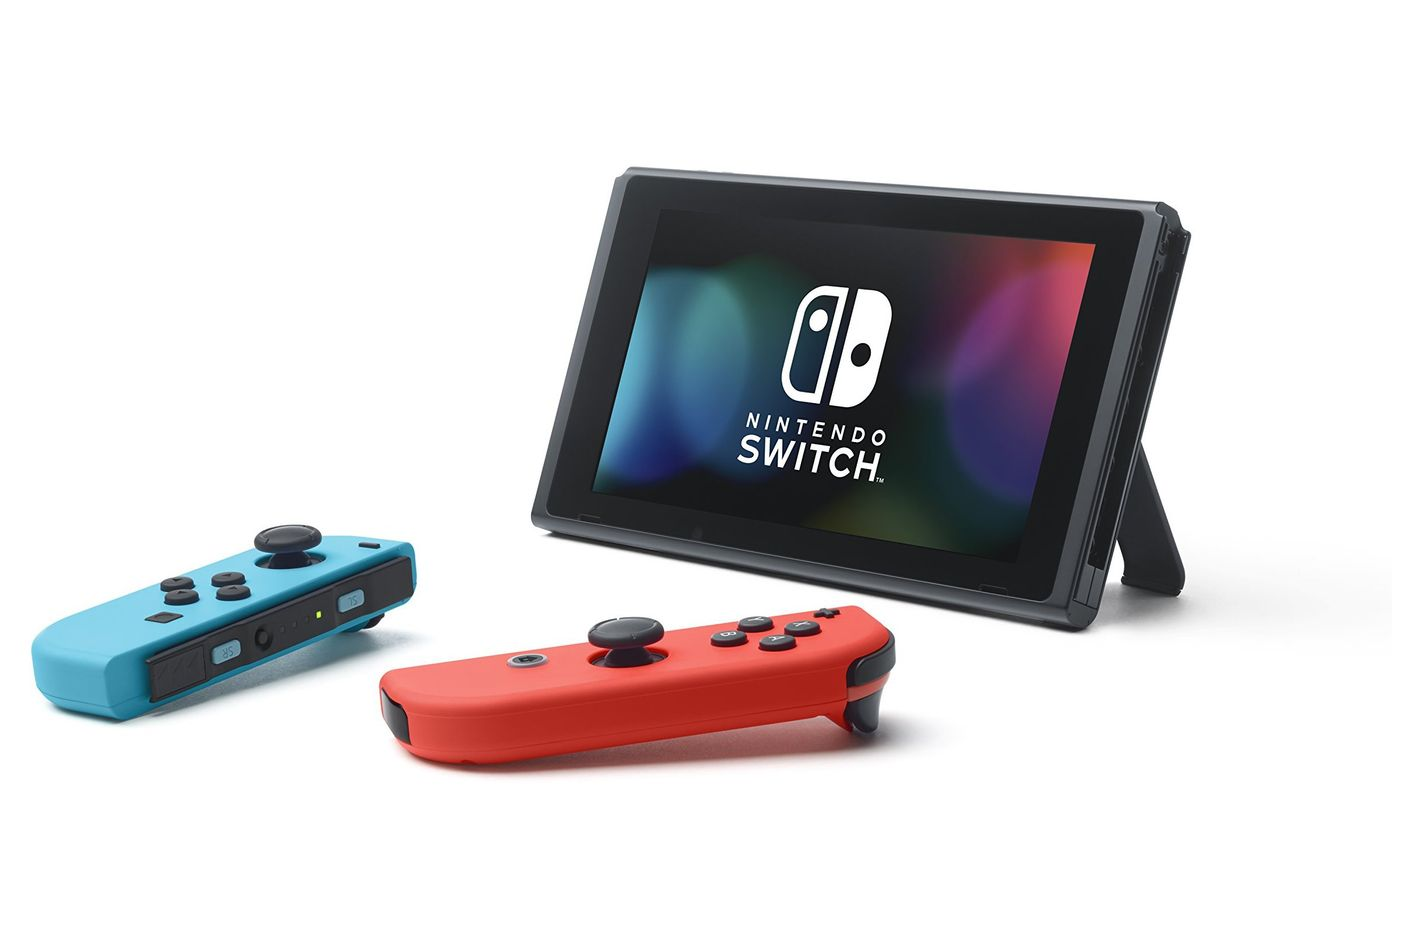 Nintendo Switch — Neon Blue and Red Joy-Con